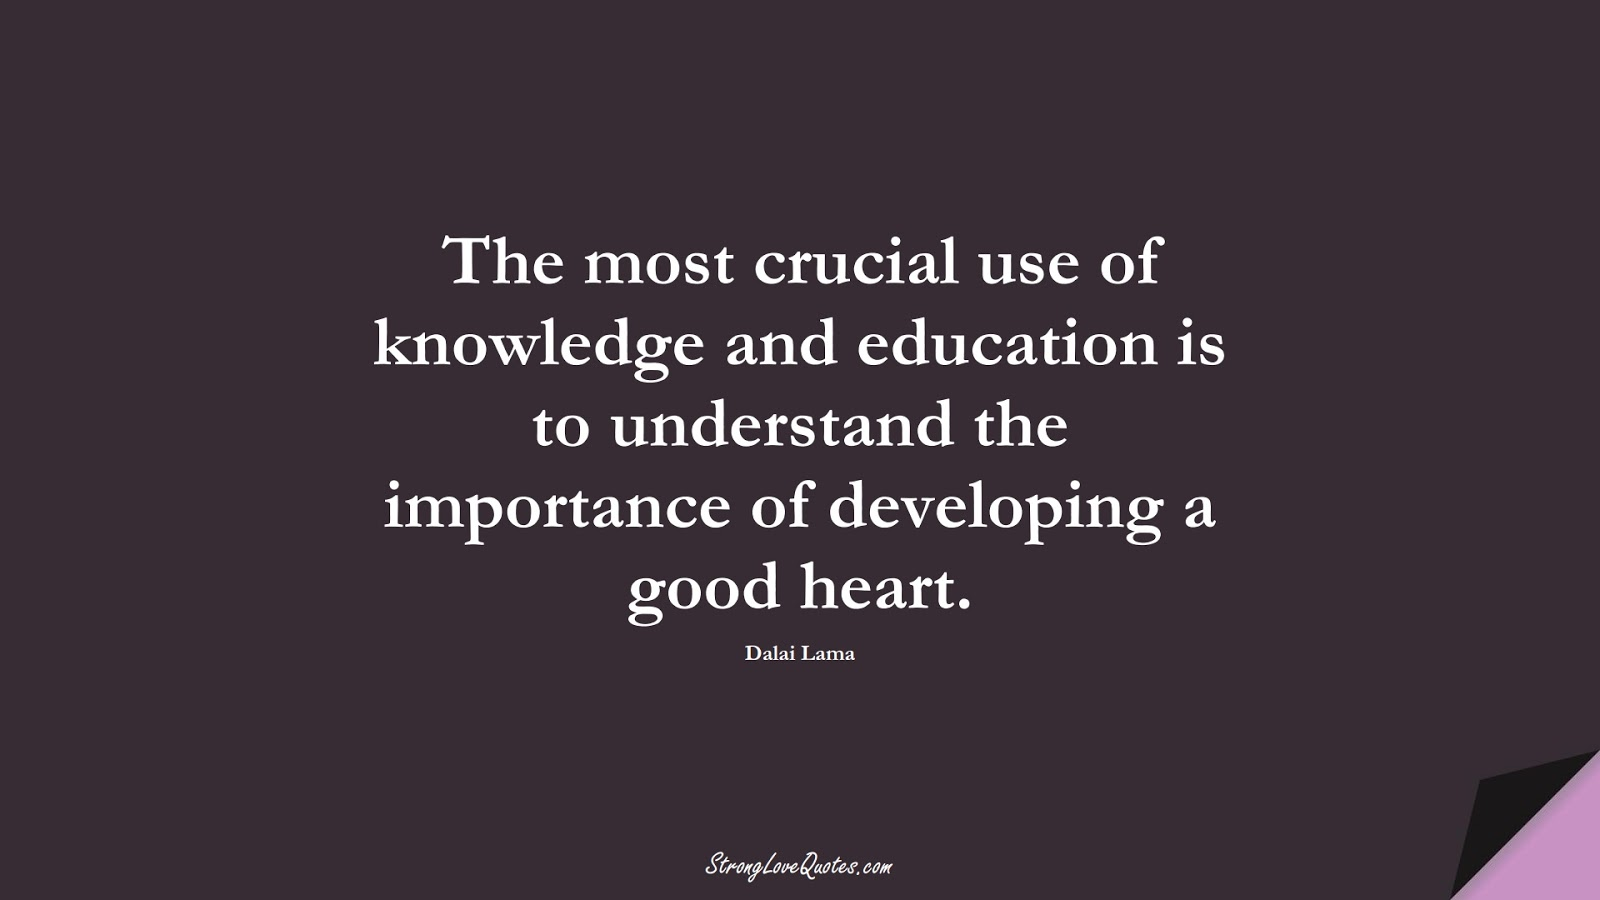 The most crucial use of knowledge and education is to understand the importance of developing a good heart. (Dalai Lama);  #KnowledgeQuotes